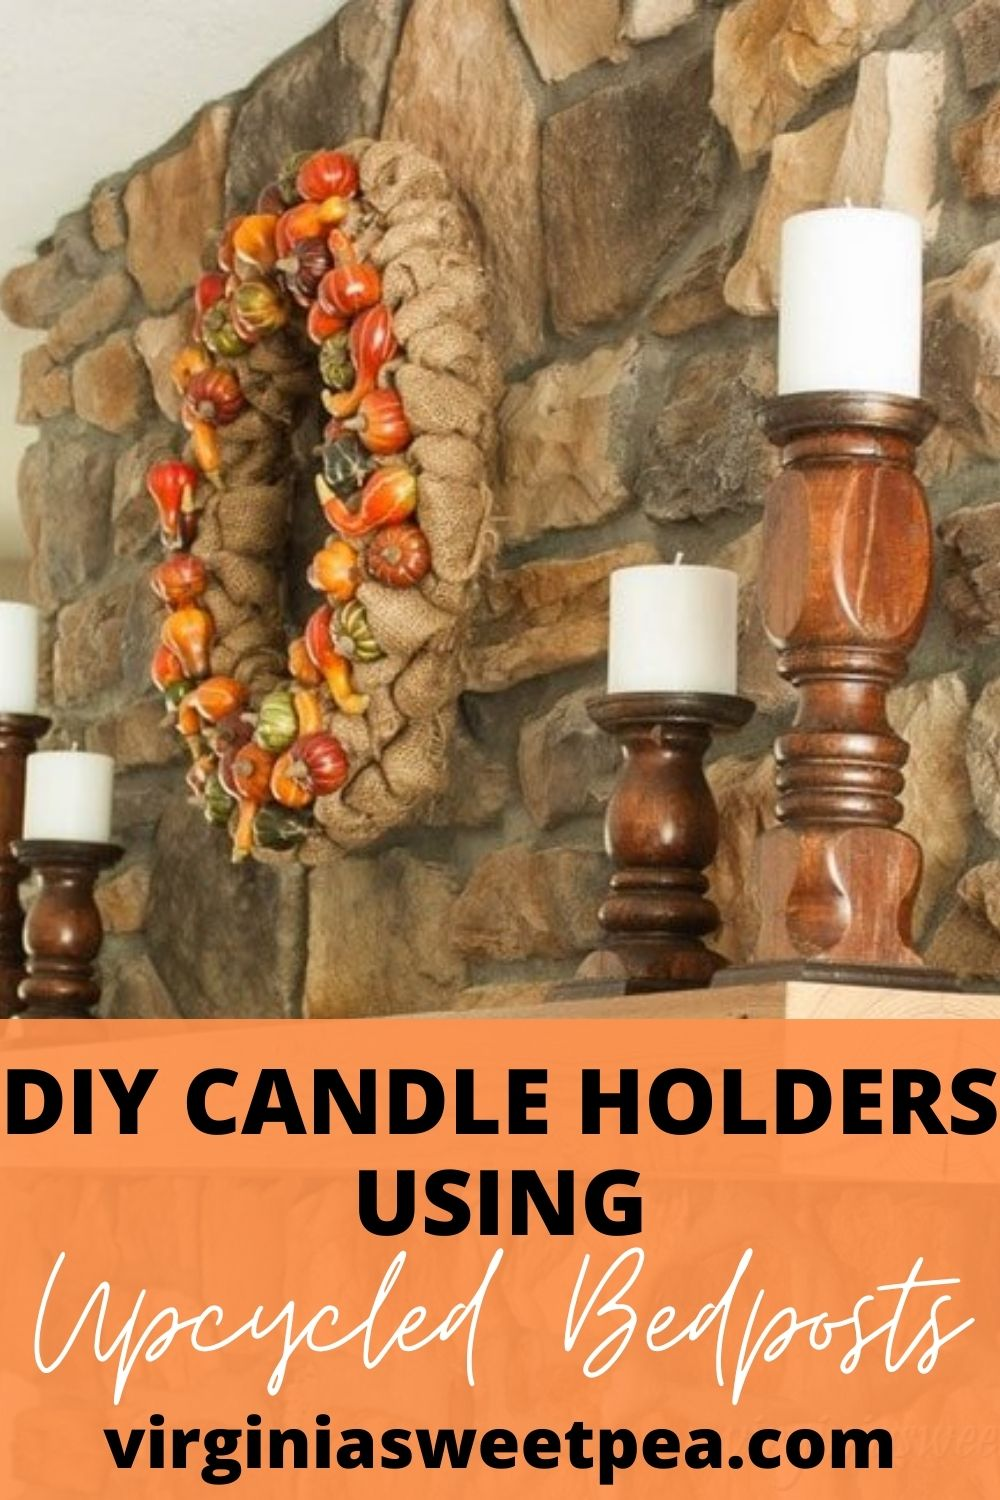 DIY Candle Holders Using Upcyled Bedposts